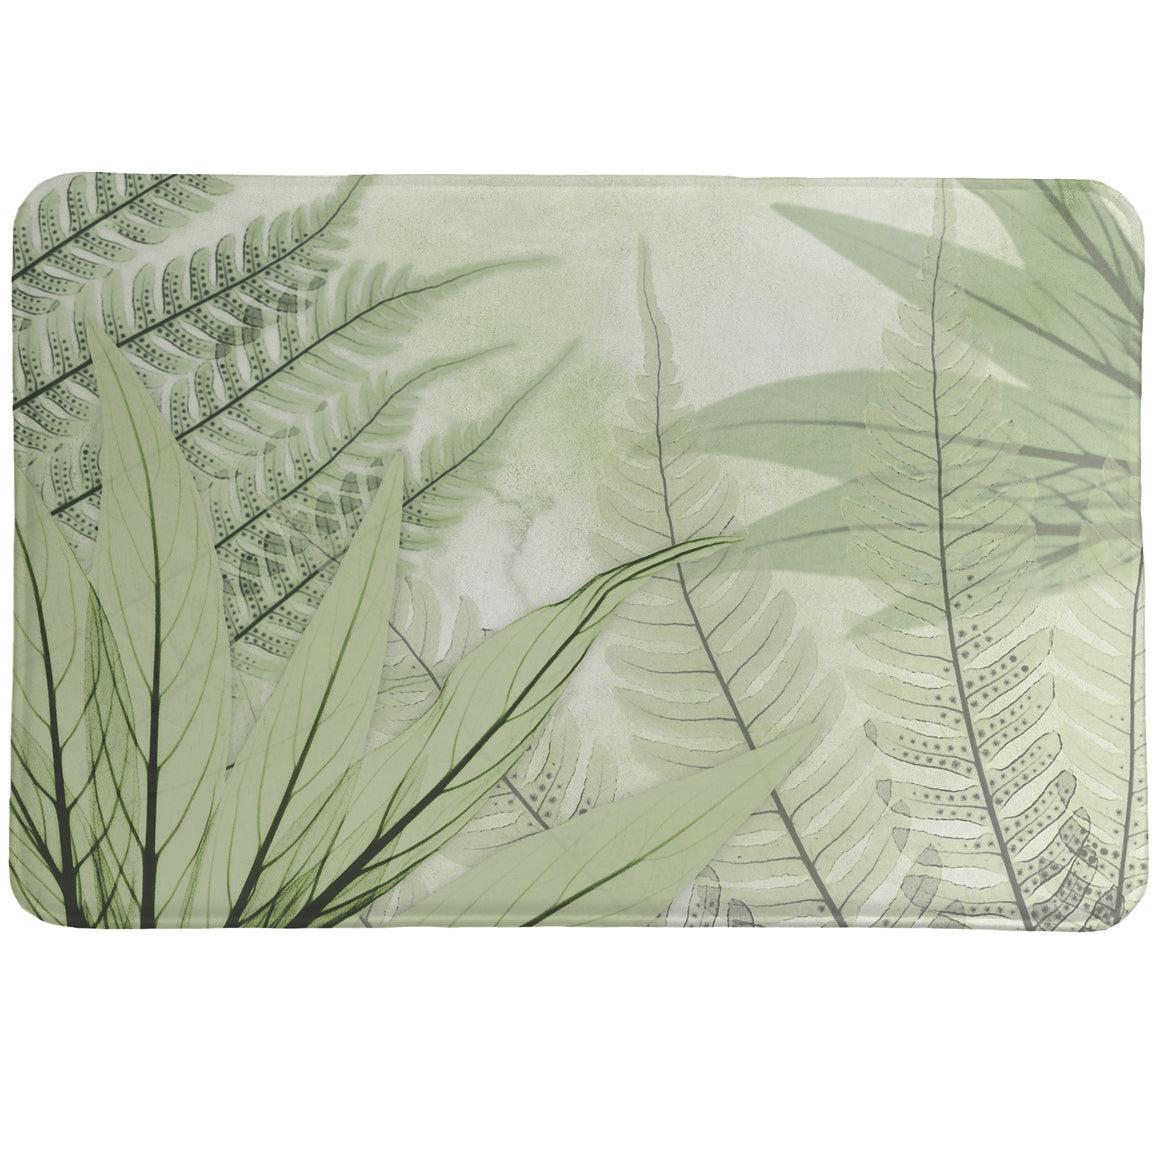 Layered Ferns Memory Foam Rug showcases a calming, nature-inspired design of layered ferns, created by a unique technique using an x-ray machine.